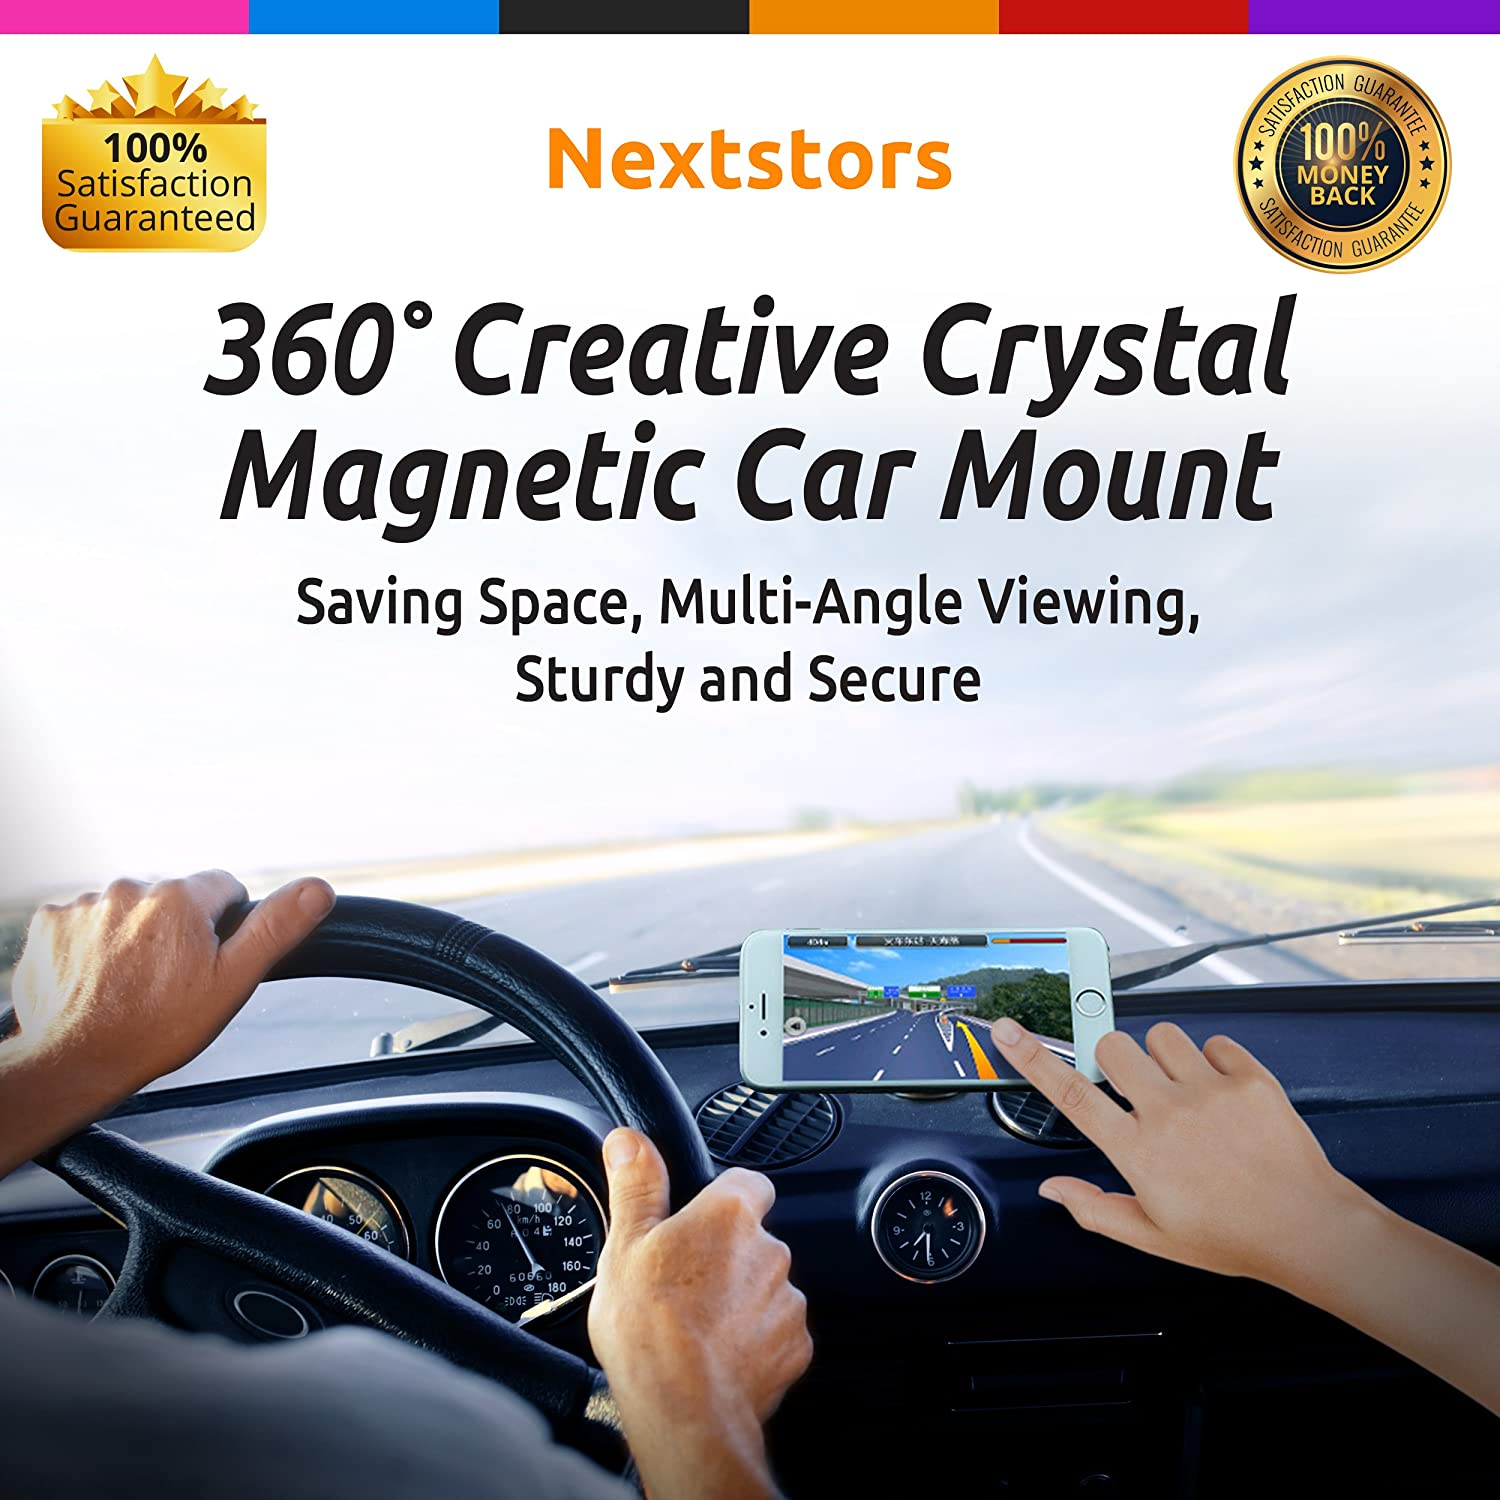 Adjustable 360 Degree Rotation from Dashboard Universal Car Mount Accessories Compatible with All Smartphones Cell Phone Devices 2019 Gift Red Nextstors Nextstors-2d Car Phone Holder Truck Bracket Magnetic GPS Holder